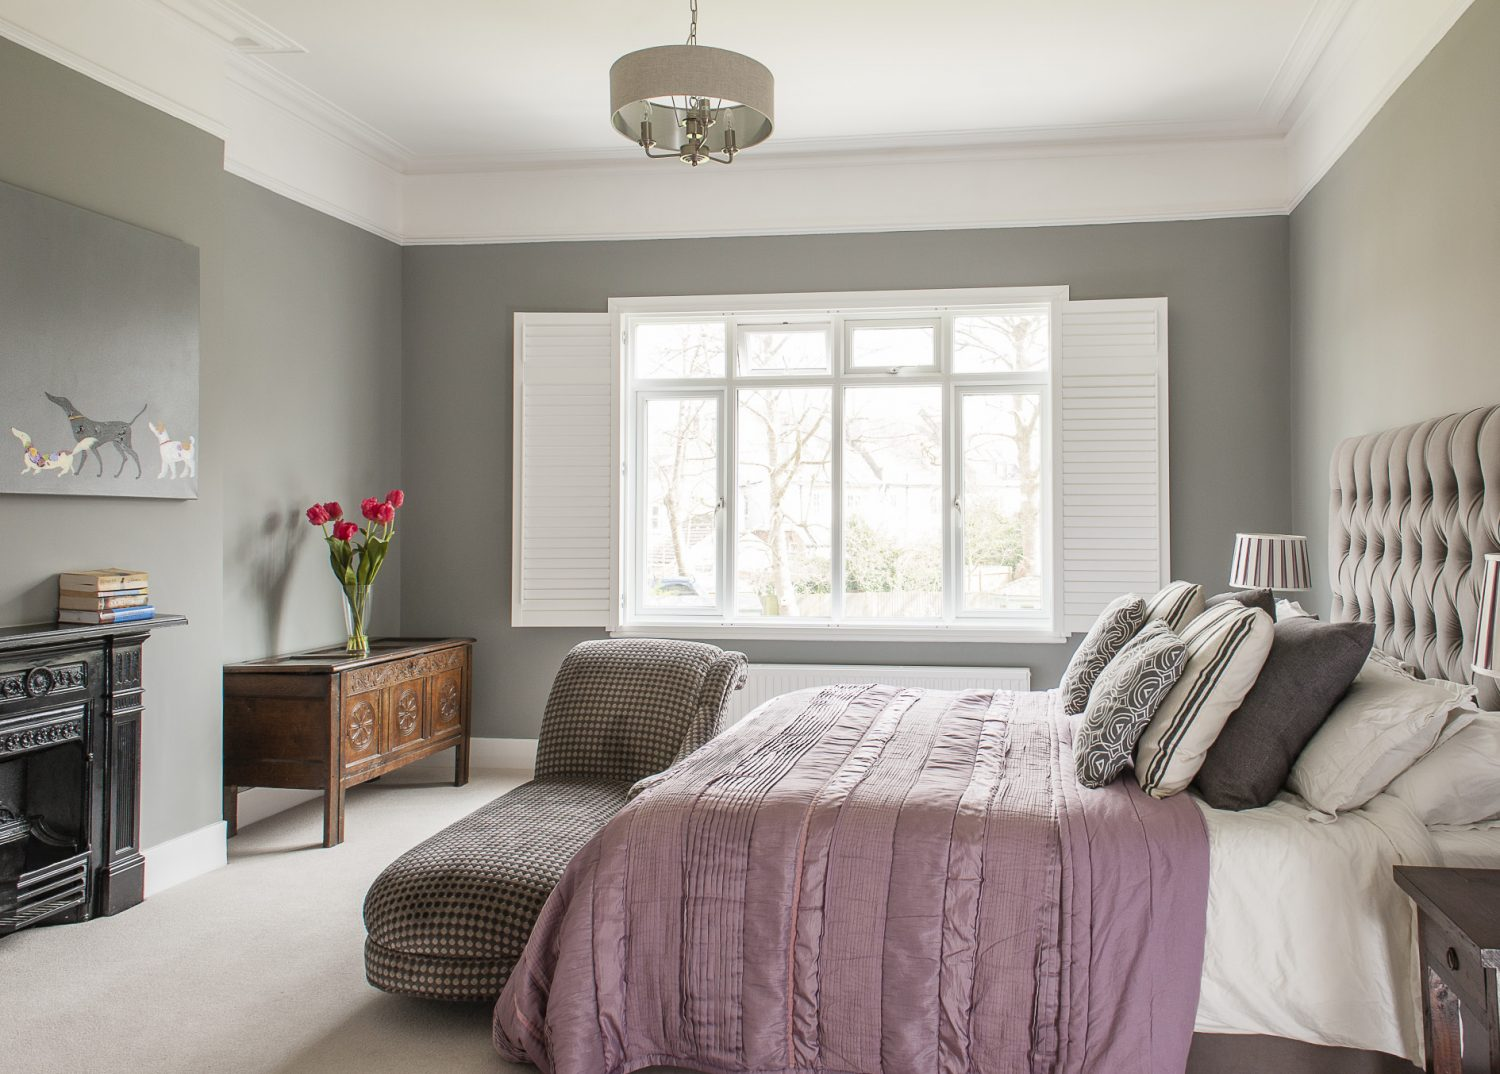 """""""We had first thought of making the whole top floor our domain,"""" says Catherine, """"but whatever way we looked at it we just couldn't make it work."""" The answer has been to remodel a bathroom and the next door former bedroom to create a master suite with both dressing room and bathroom"""